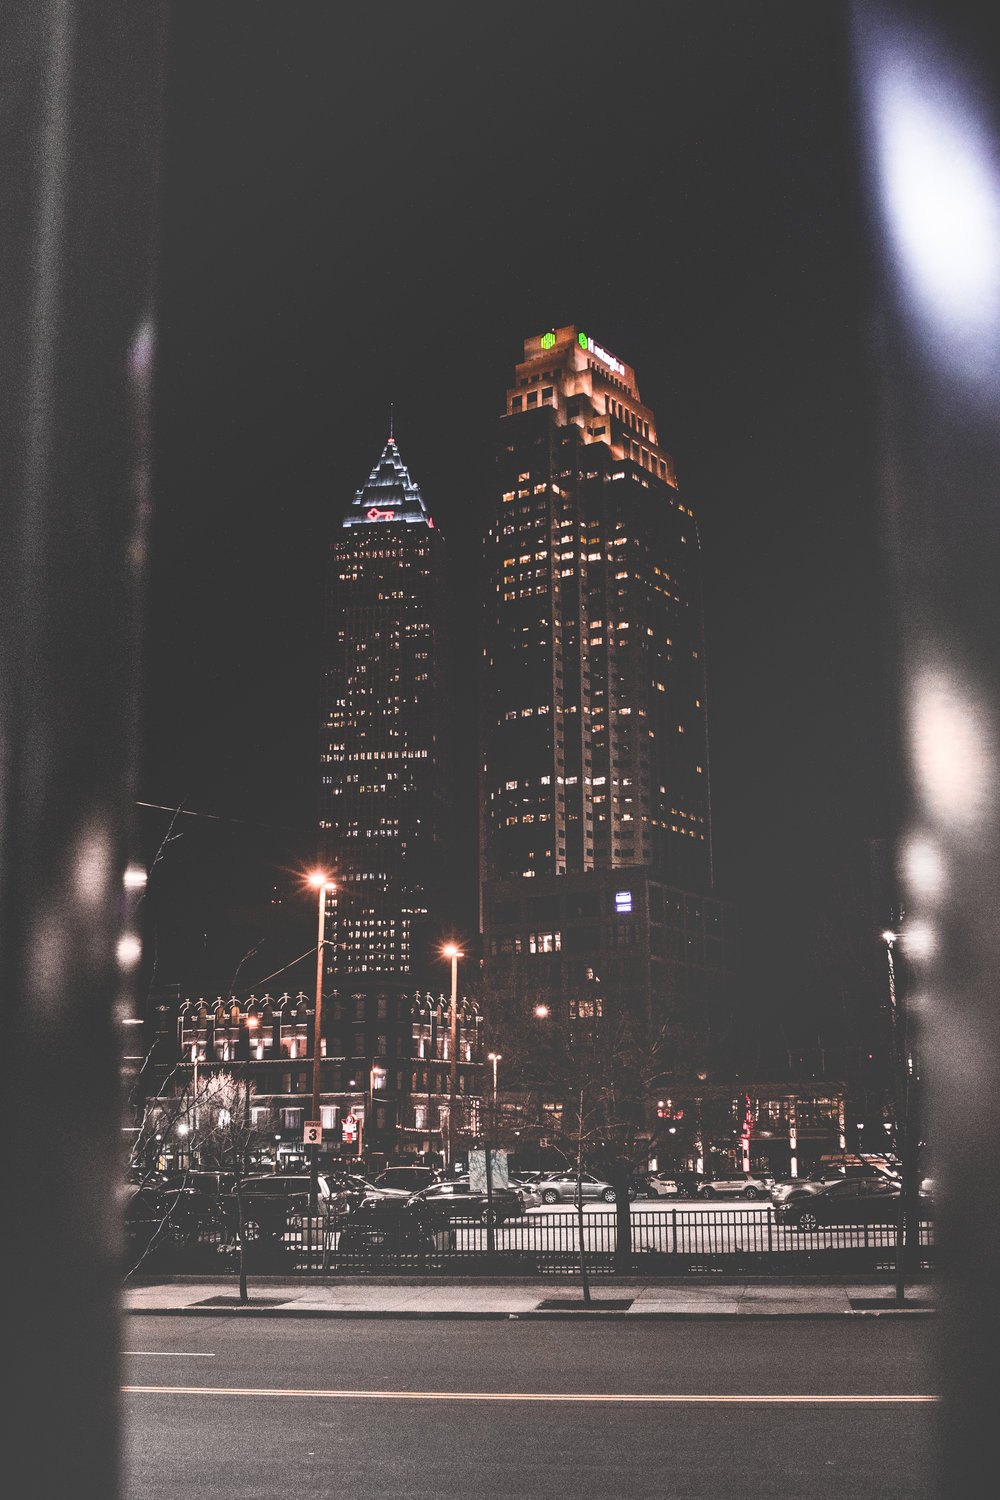 Cleveland has some dope views. - I wasn't that excited about shooting in Cleveland to be honest. It was a cold and super windy night as well which made me rethink my choices. I had three hours to kill alone and being alone on the streets actually made me focus way more on the little details. Finding vantage points like this one makes on alright photo of these buildings more interesting and creates depth.